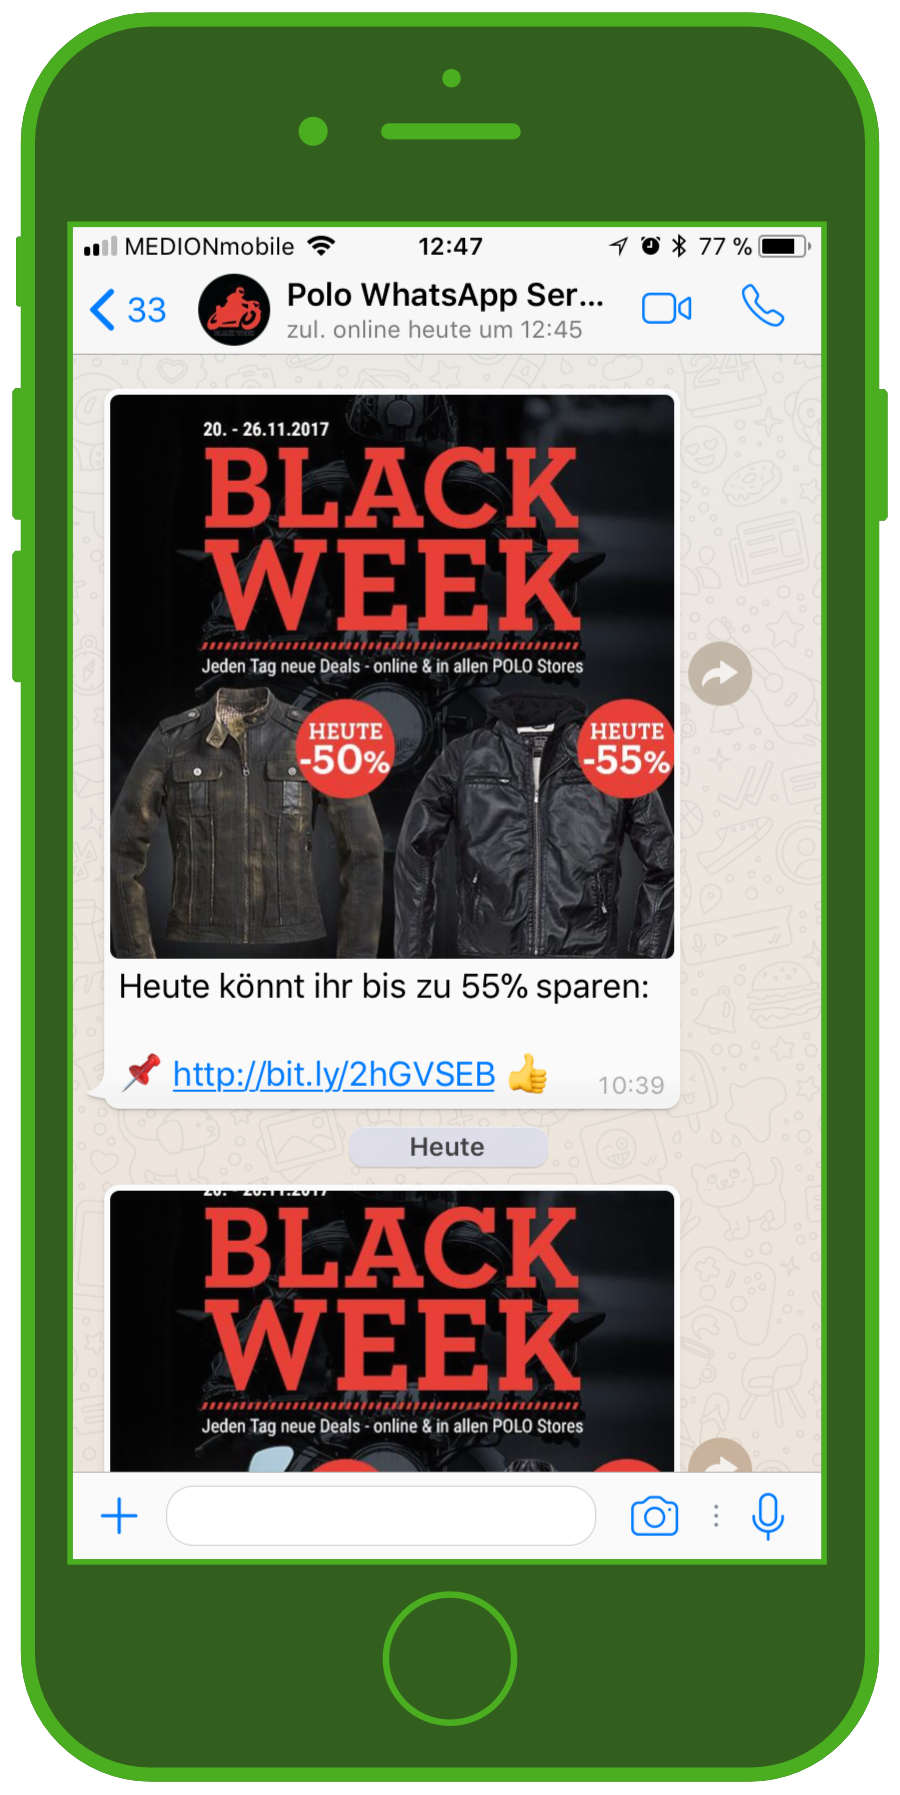 device-polo-whatsapp-blackweek-fashion